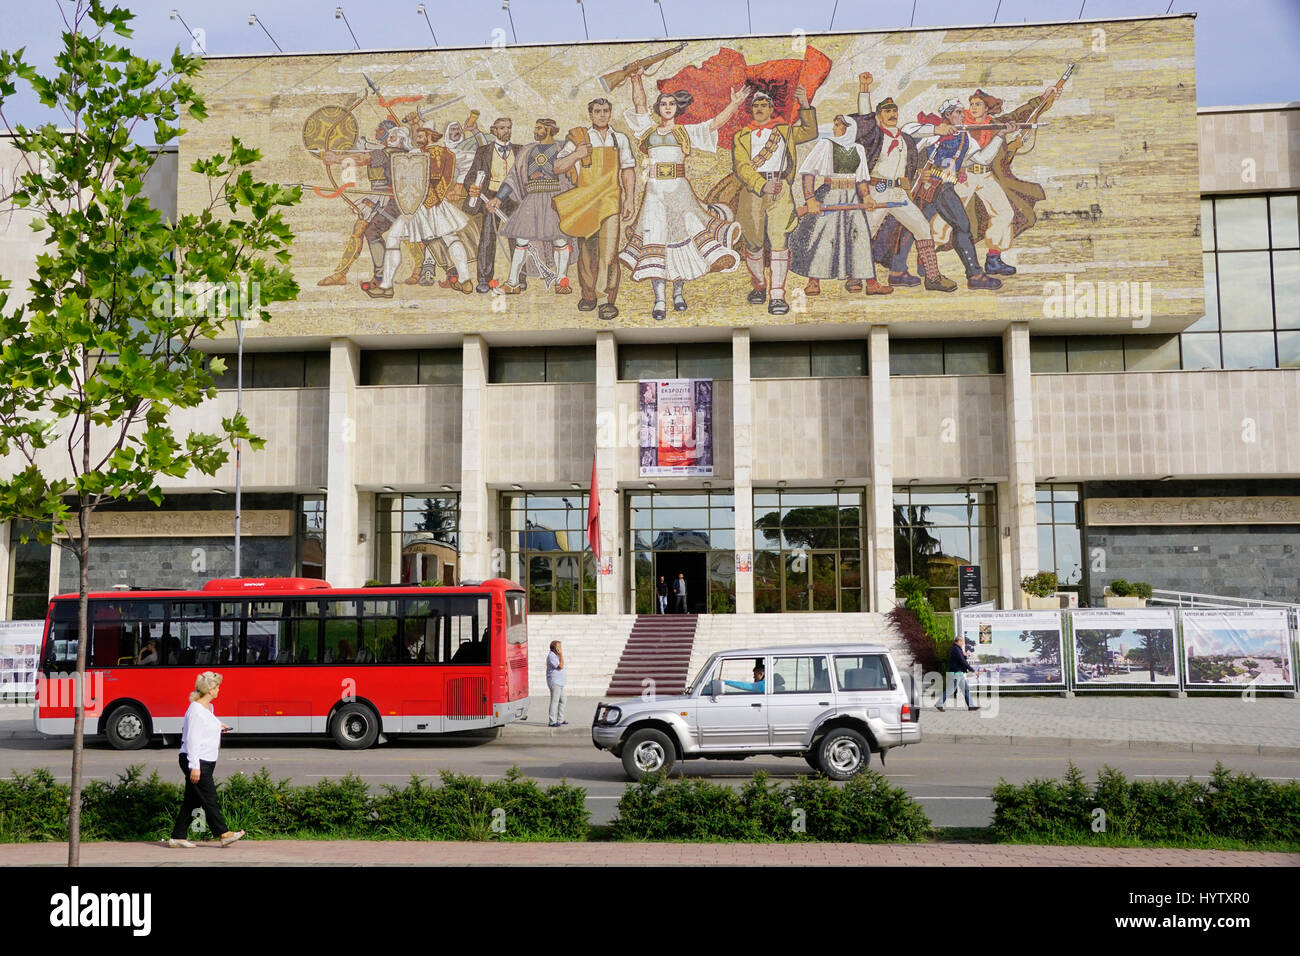 National History Museum in Tirana, Albania. Stock Photo